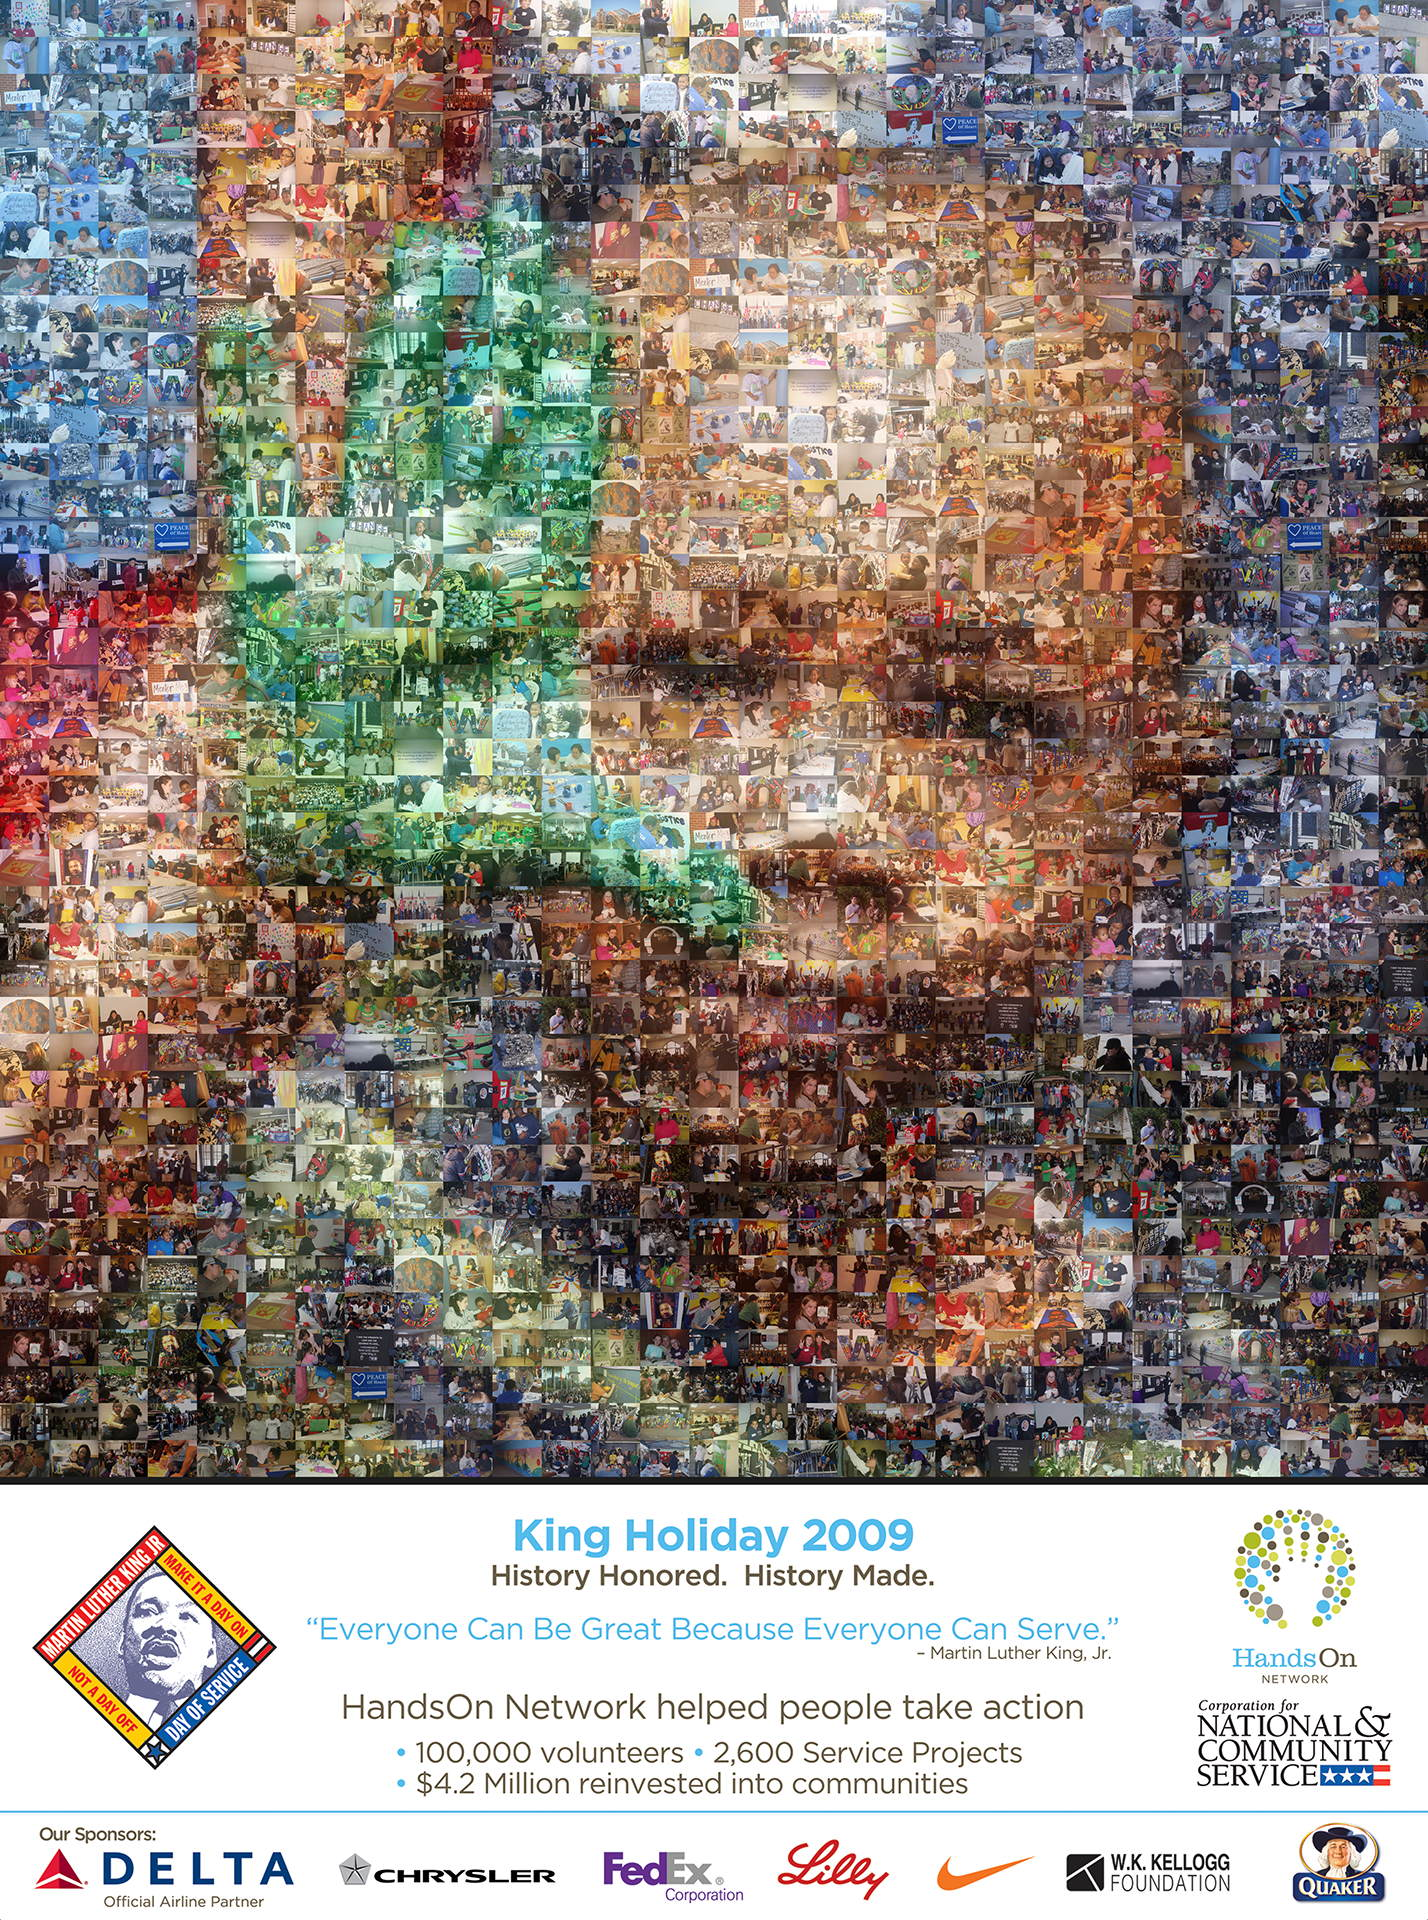 photo mosaic This banner was created for MLK day 2009 using 294 photos